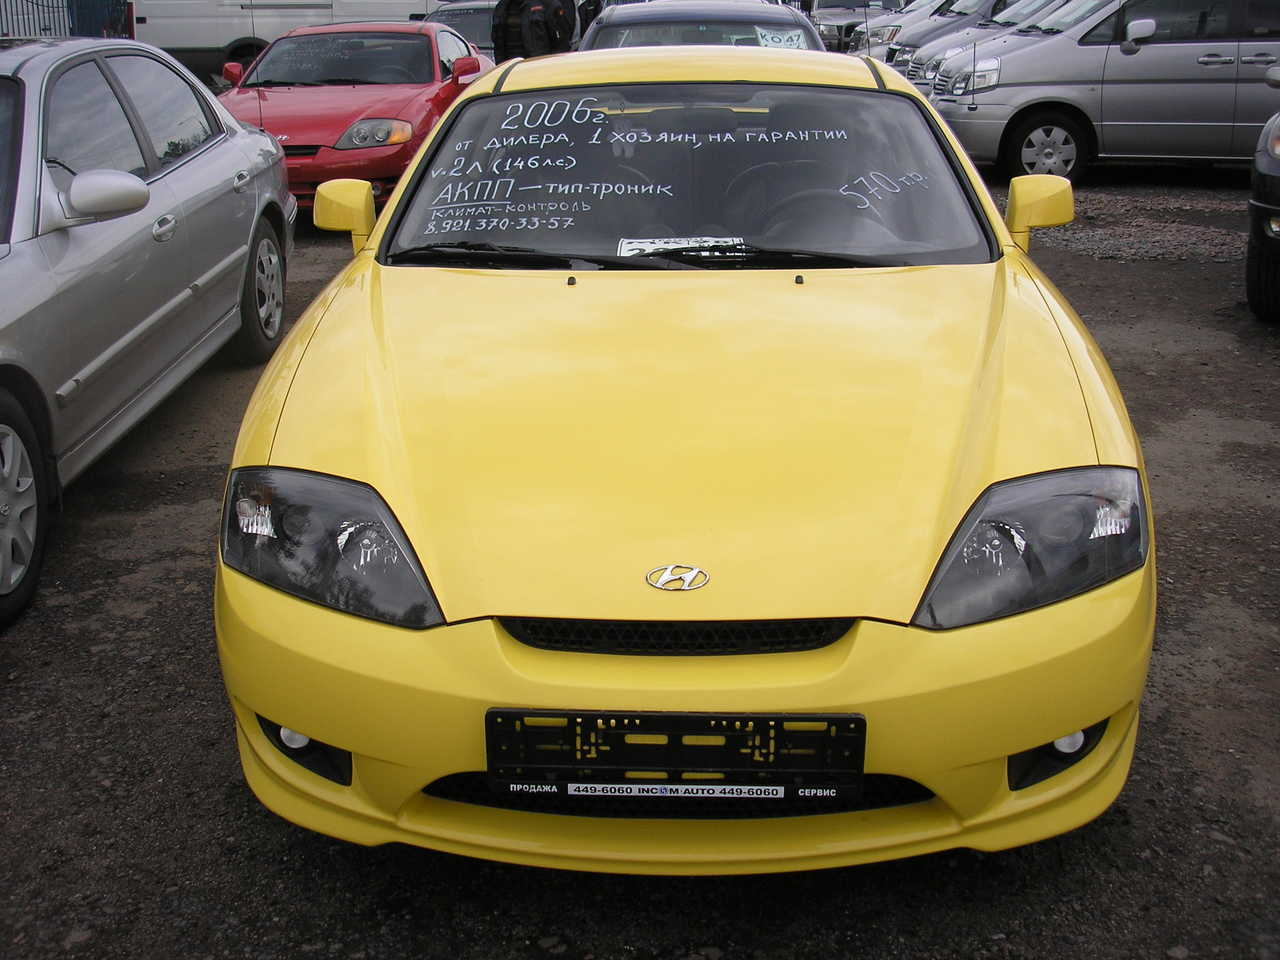 Used 2006 Hyundai Tiburon Photos 2000cc Gasoline Ff